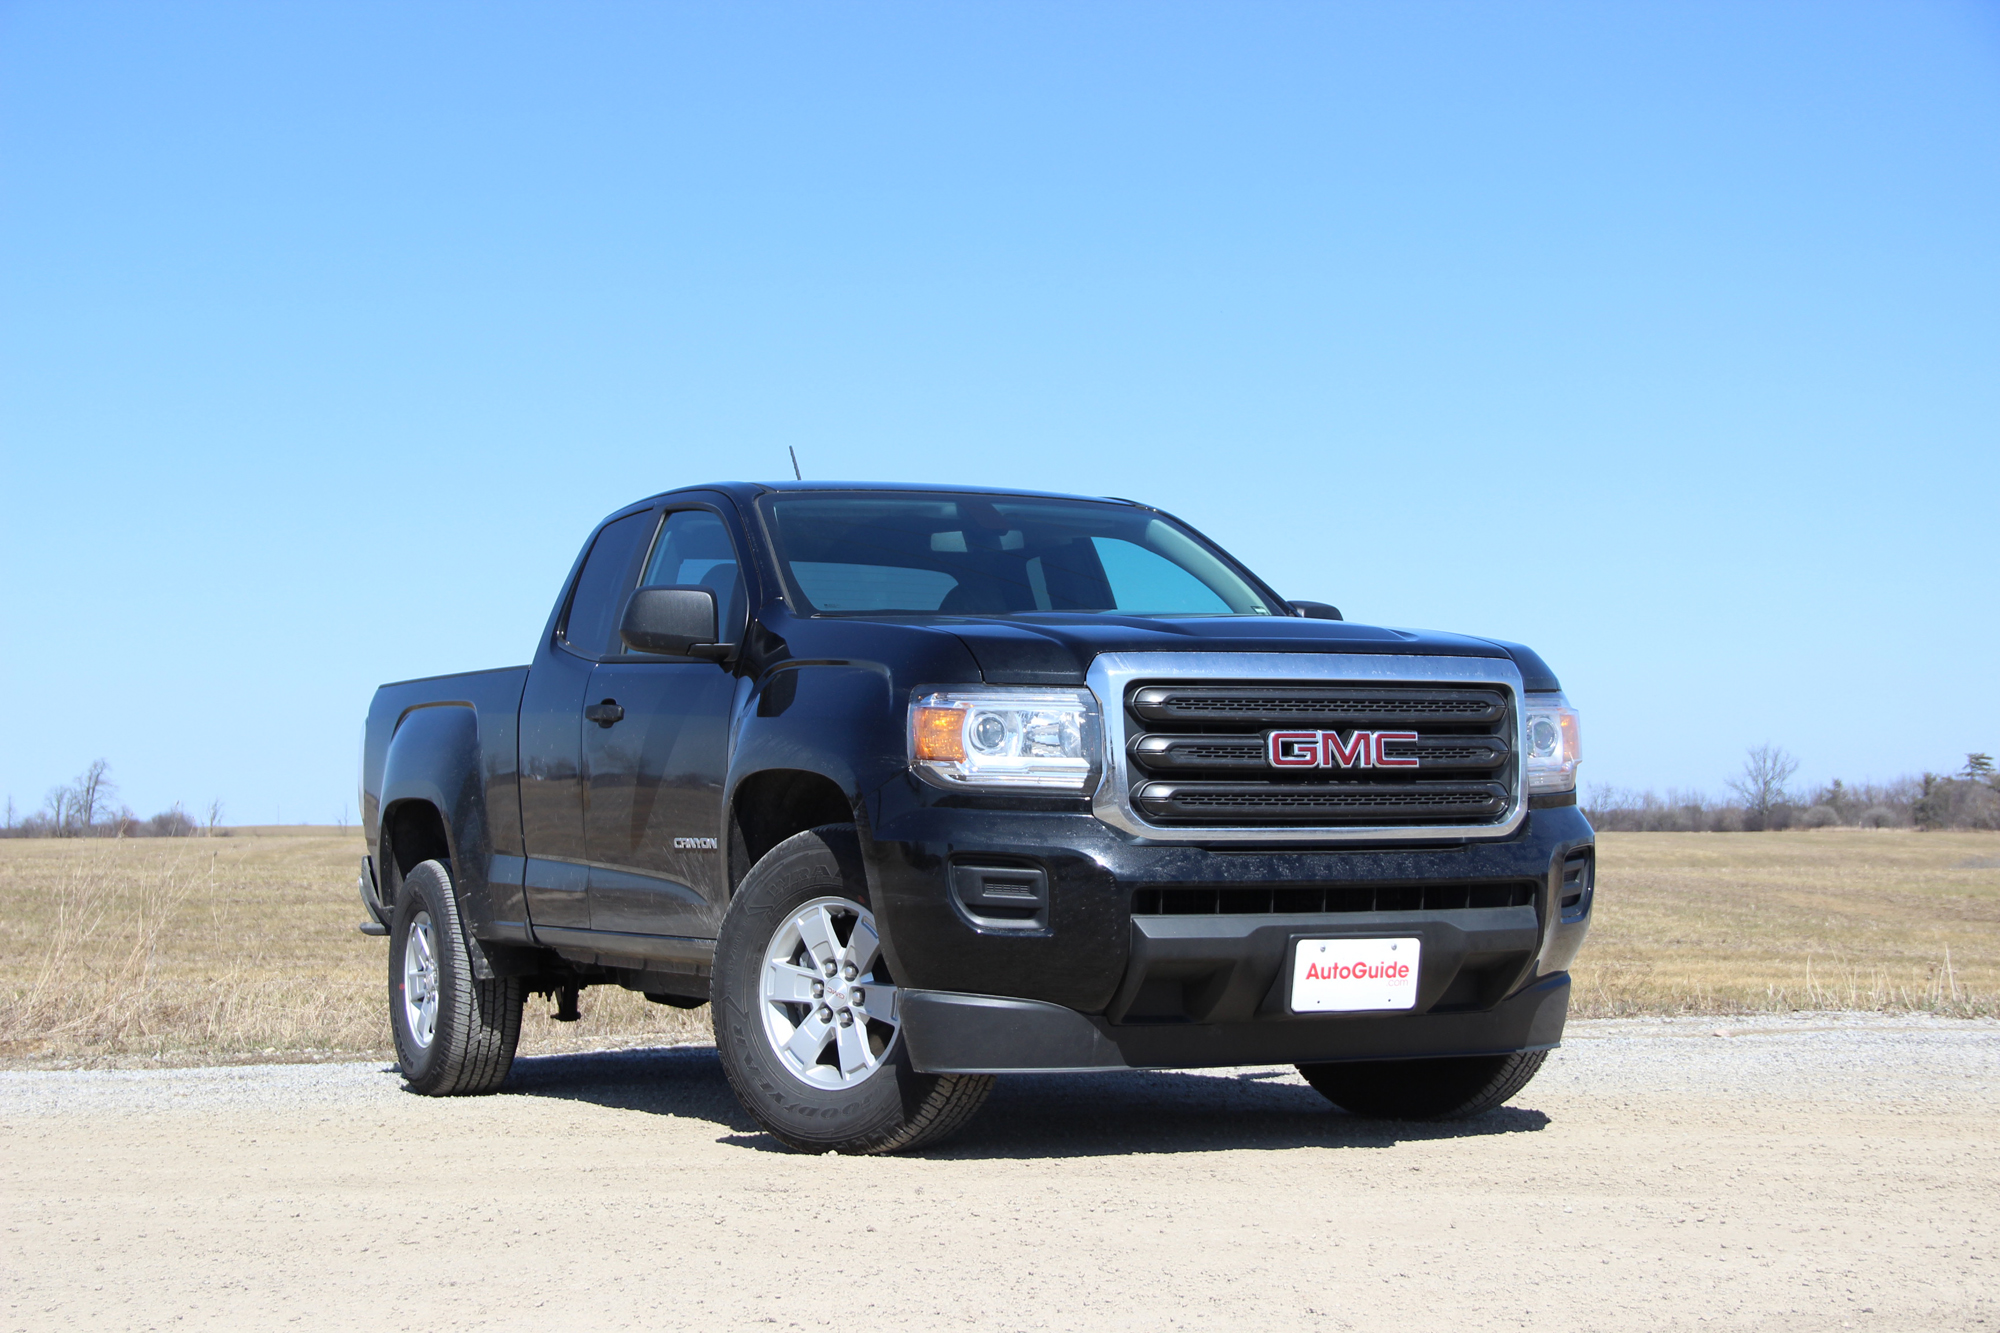 test gmc motion slt three duramax front first quarter diesel cars review in reviews canyon